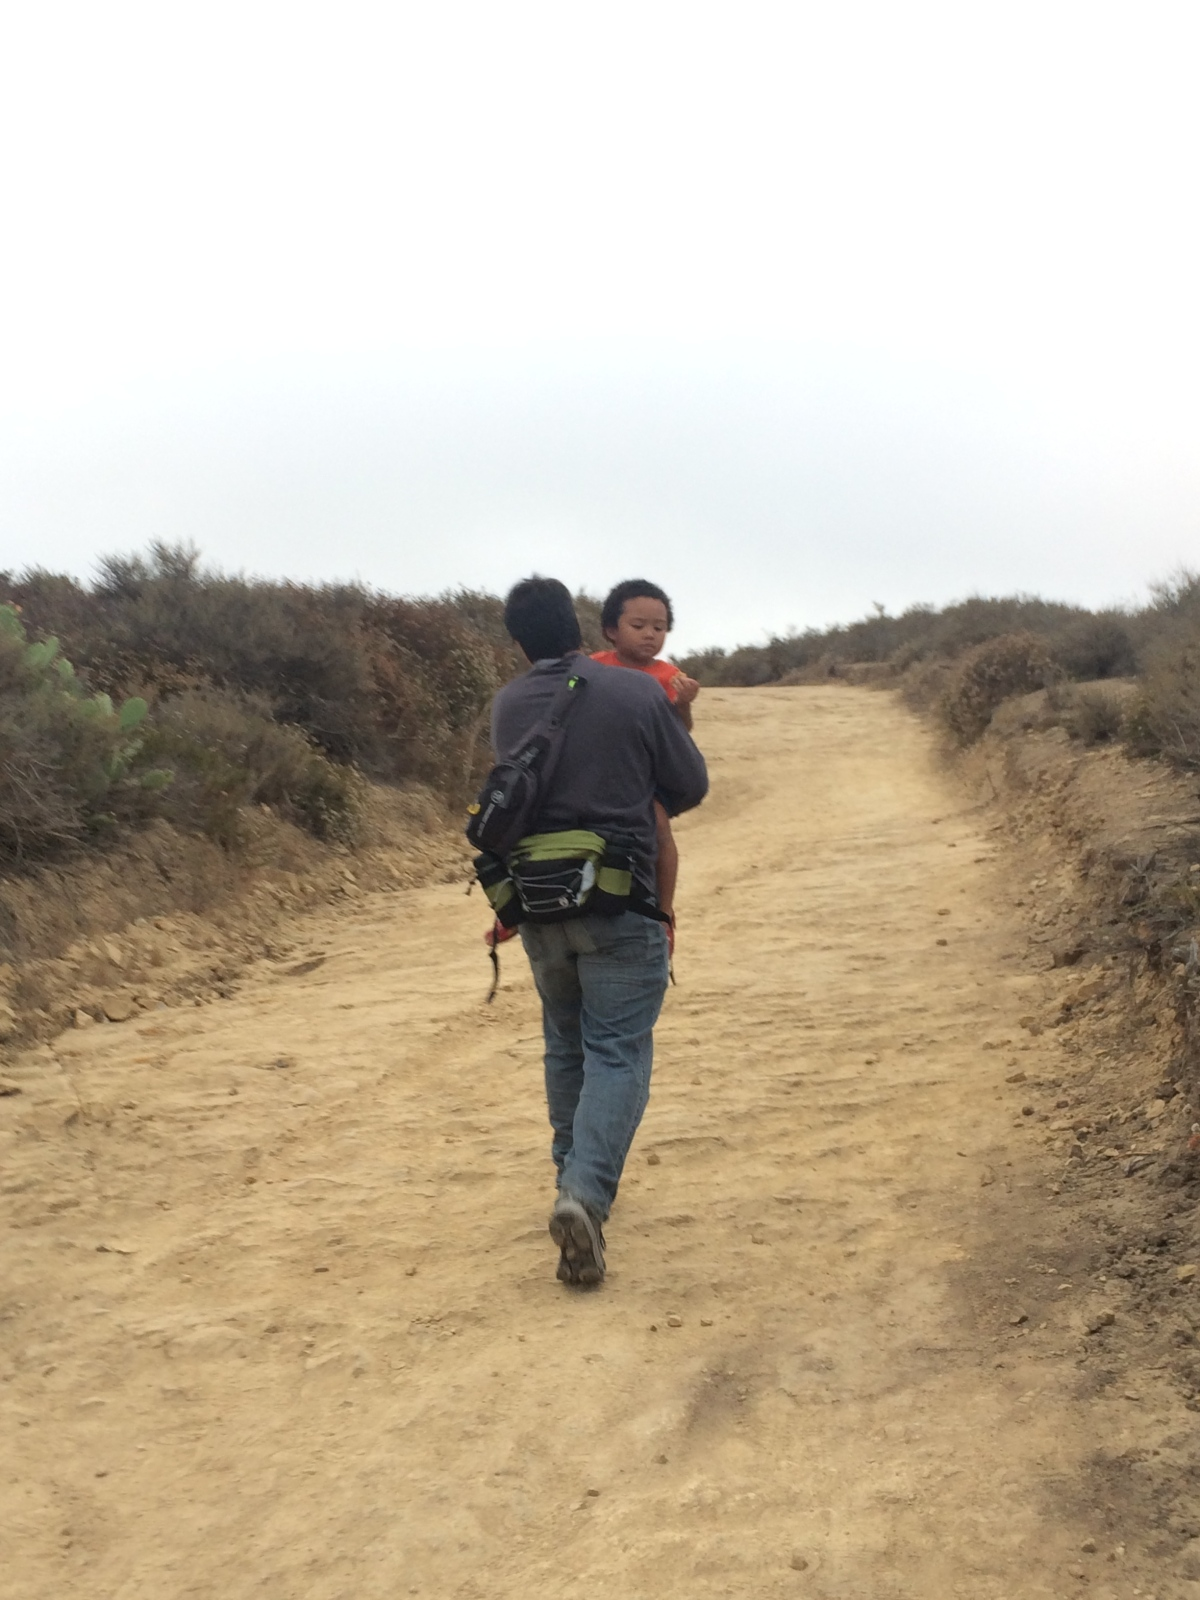 The Need For Community: Don't HikeAlone